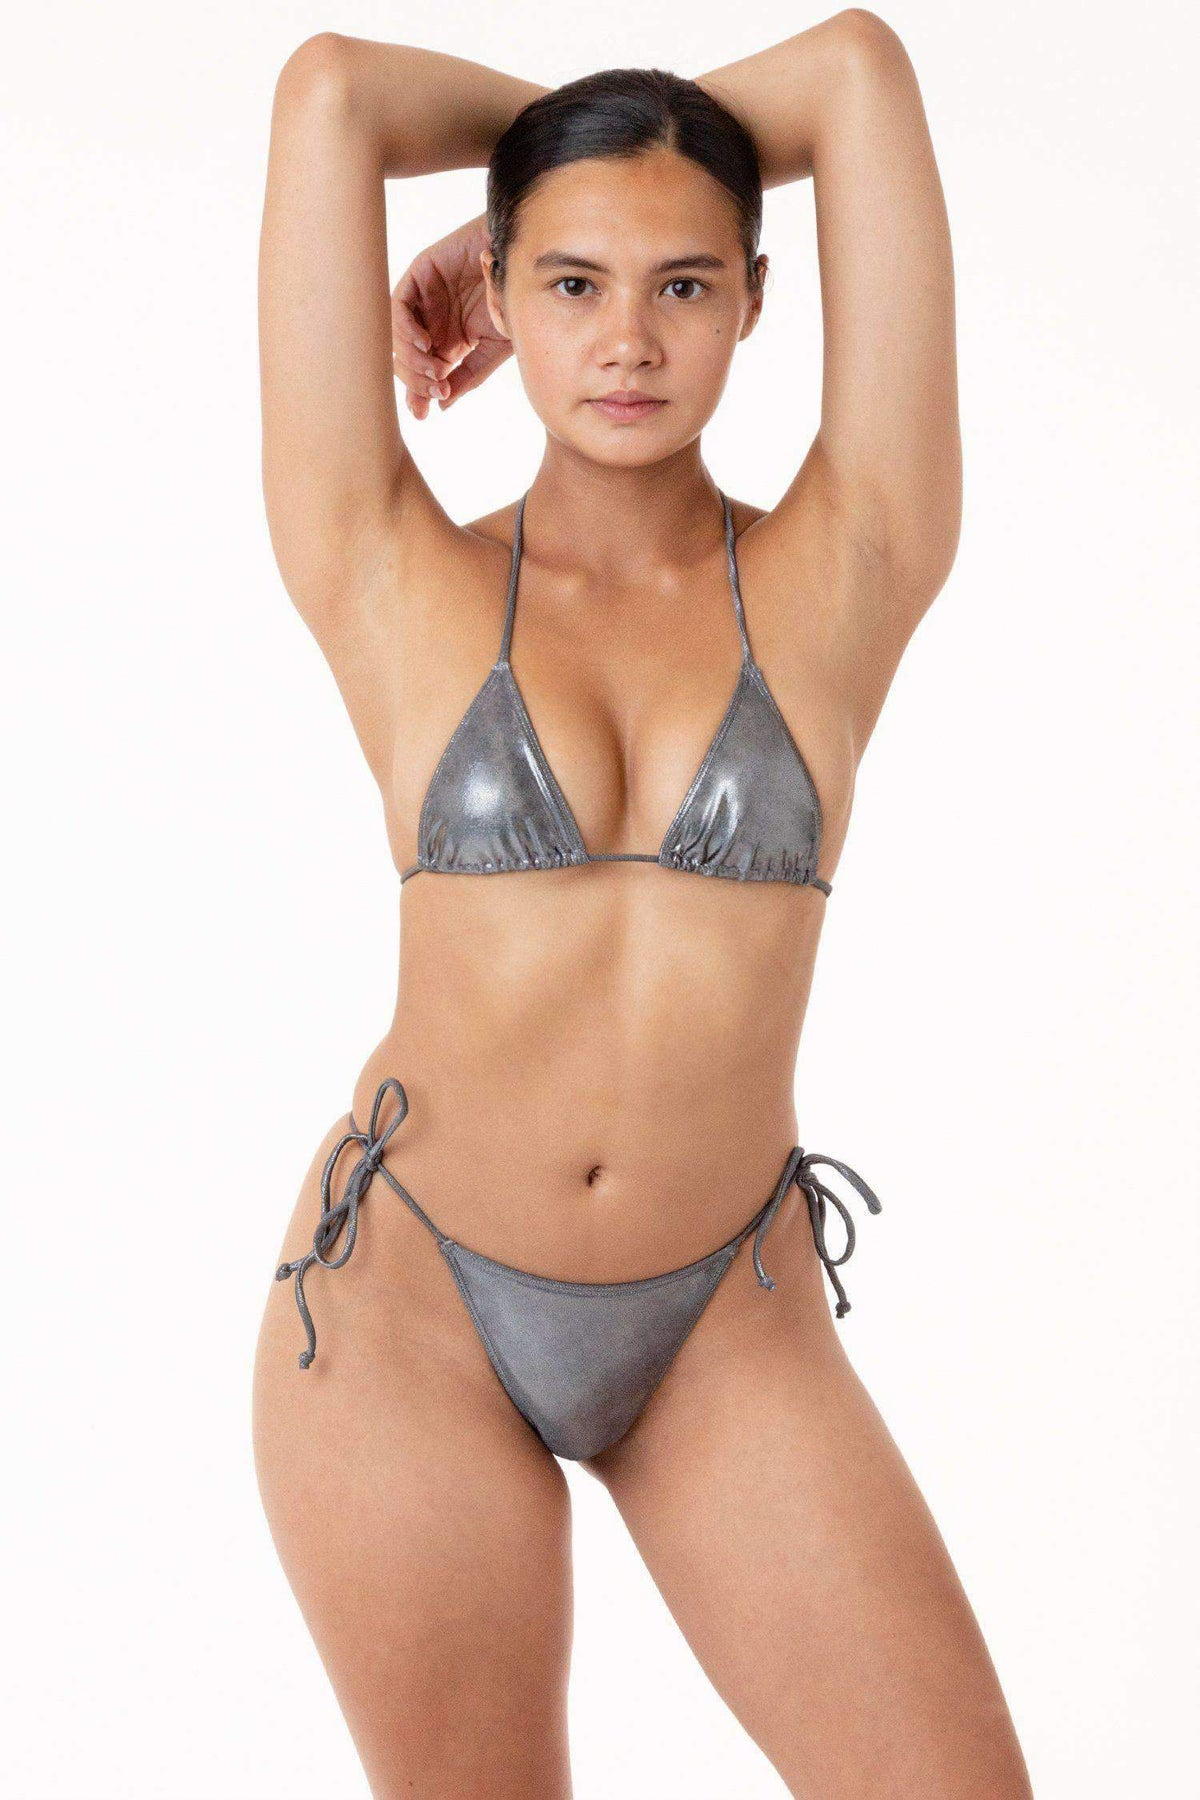 RMH3003 - Shiny Matrix String Bikini Top Swim Los Angeles Apparel Metal XS